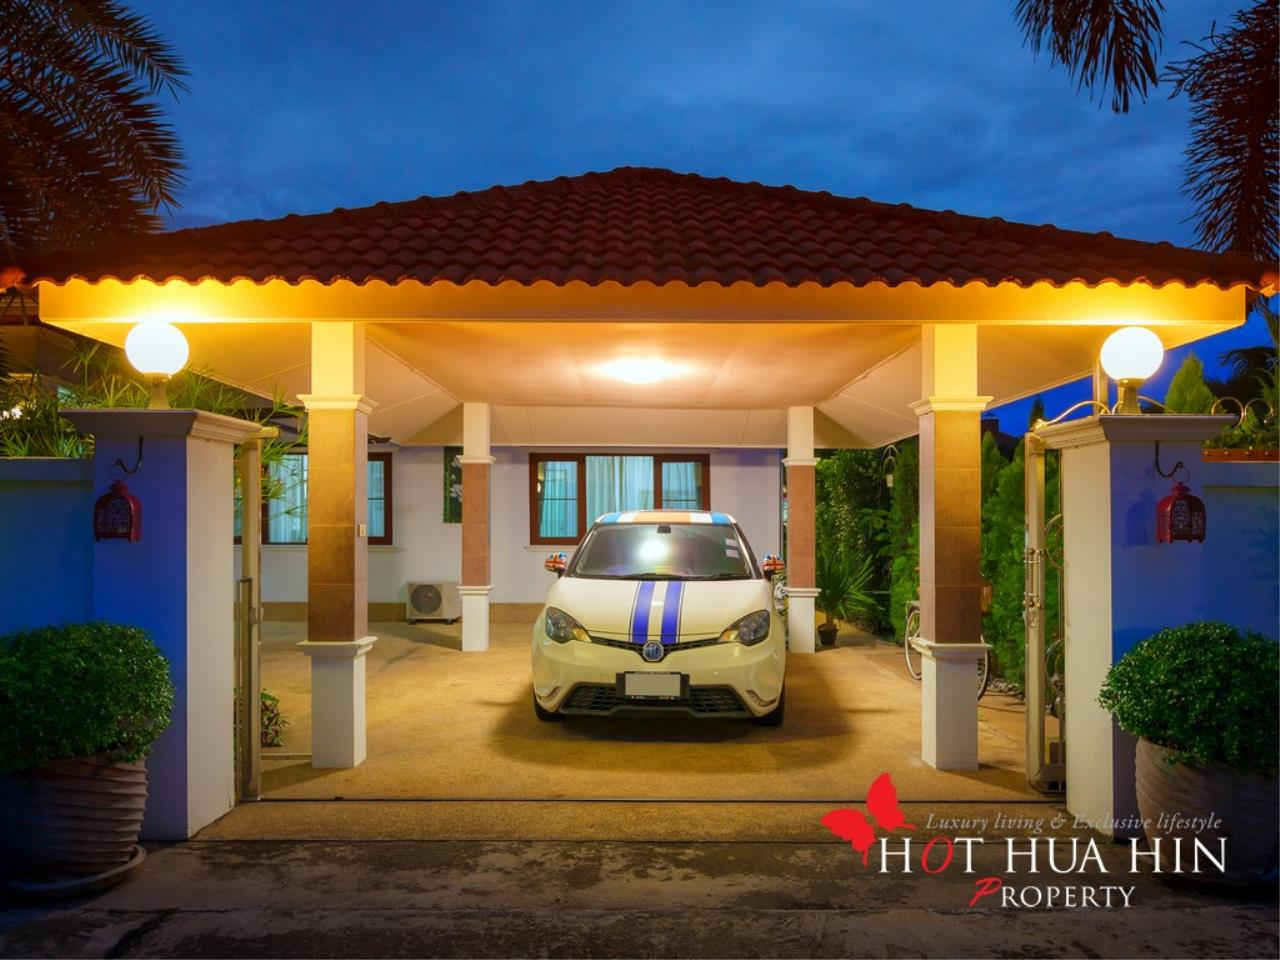 Hot Hua Hin Co. Ltd. Agency's Well Built Home With Stunning Gardens And Two Full Kitchens 42